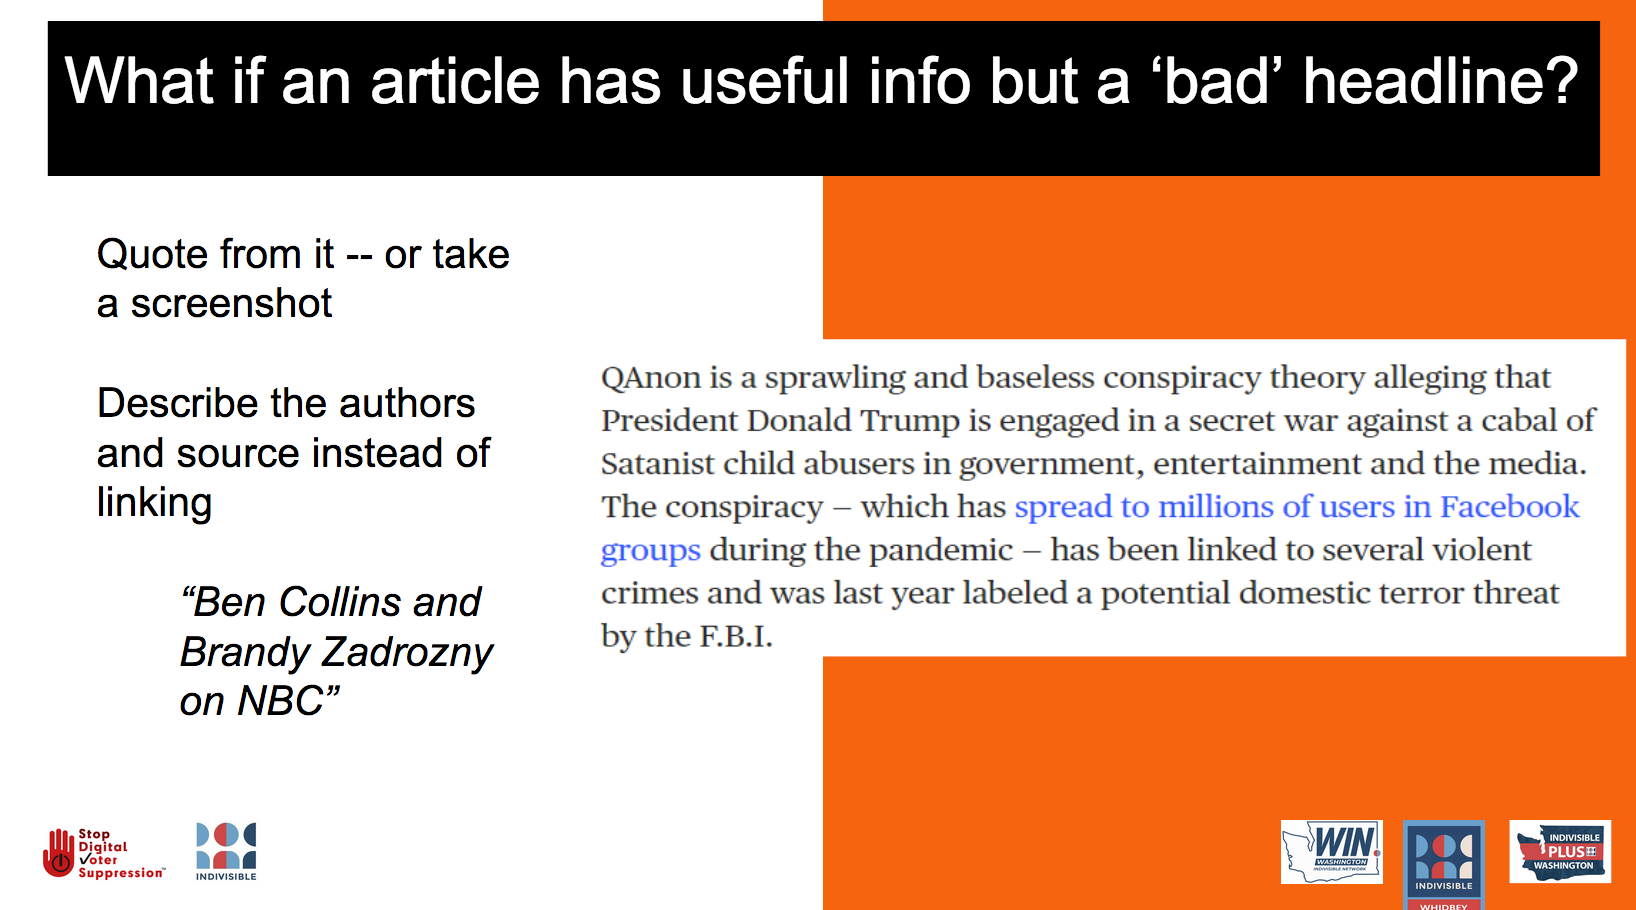 What if an article has useful info but a 'bad' headline? Quote from it—or take a screenshot. Describe it, don't link.